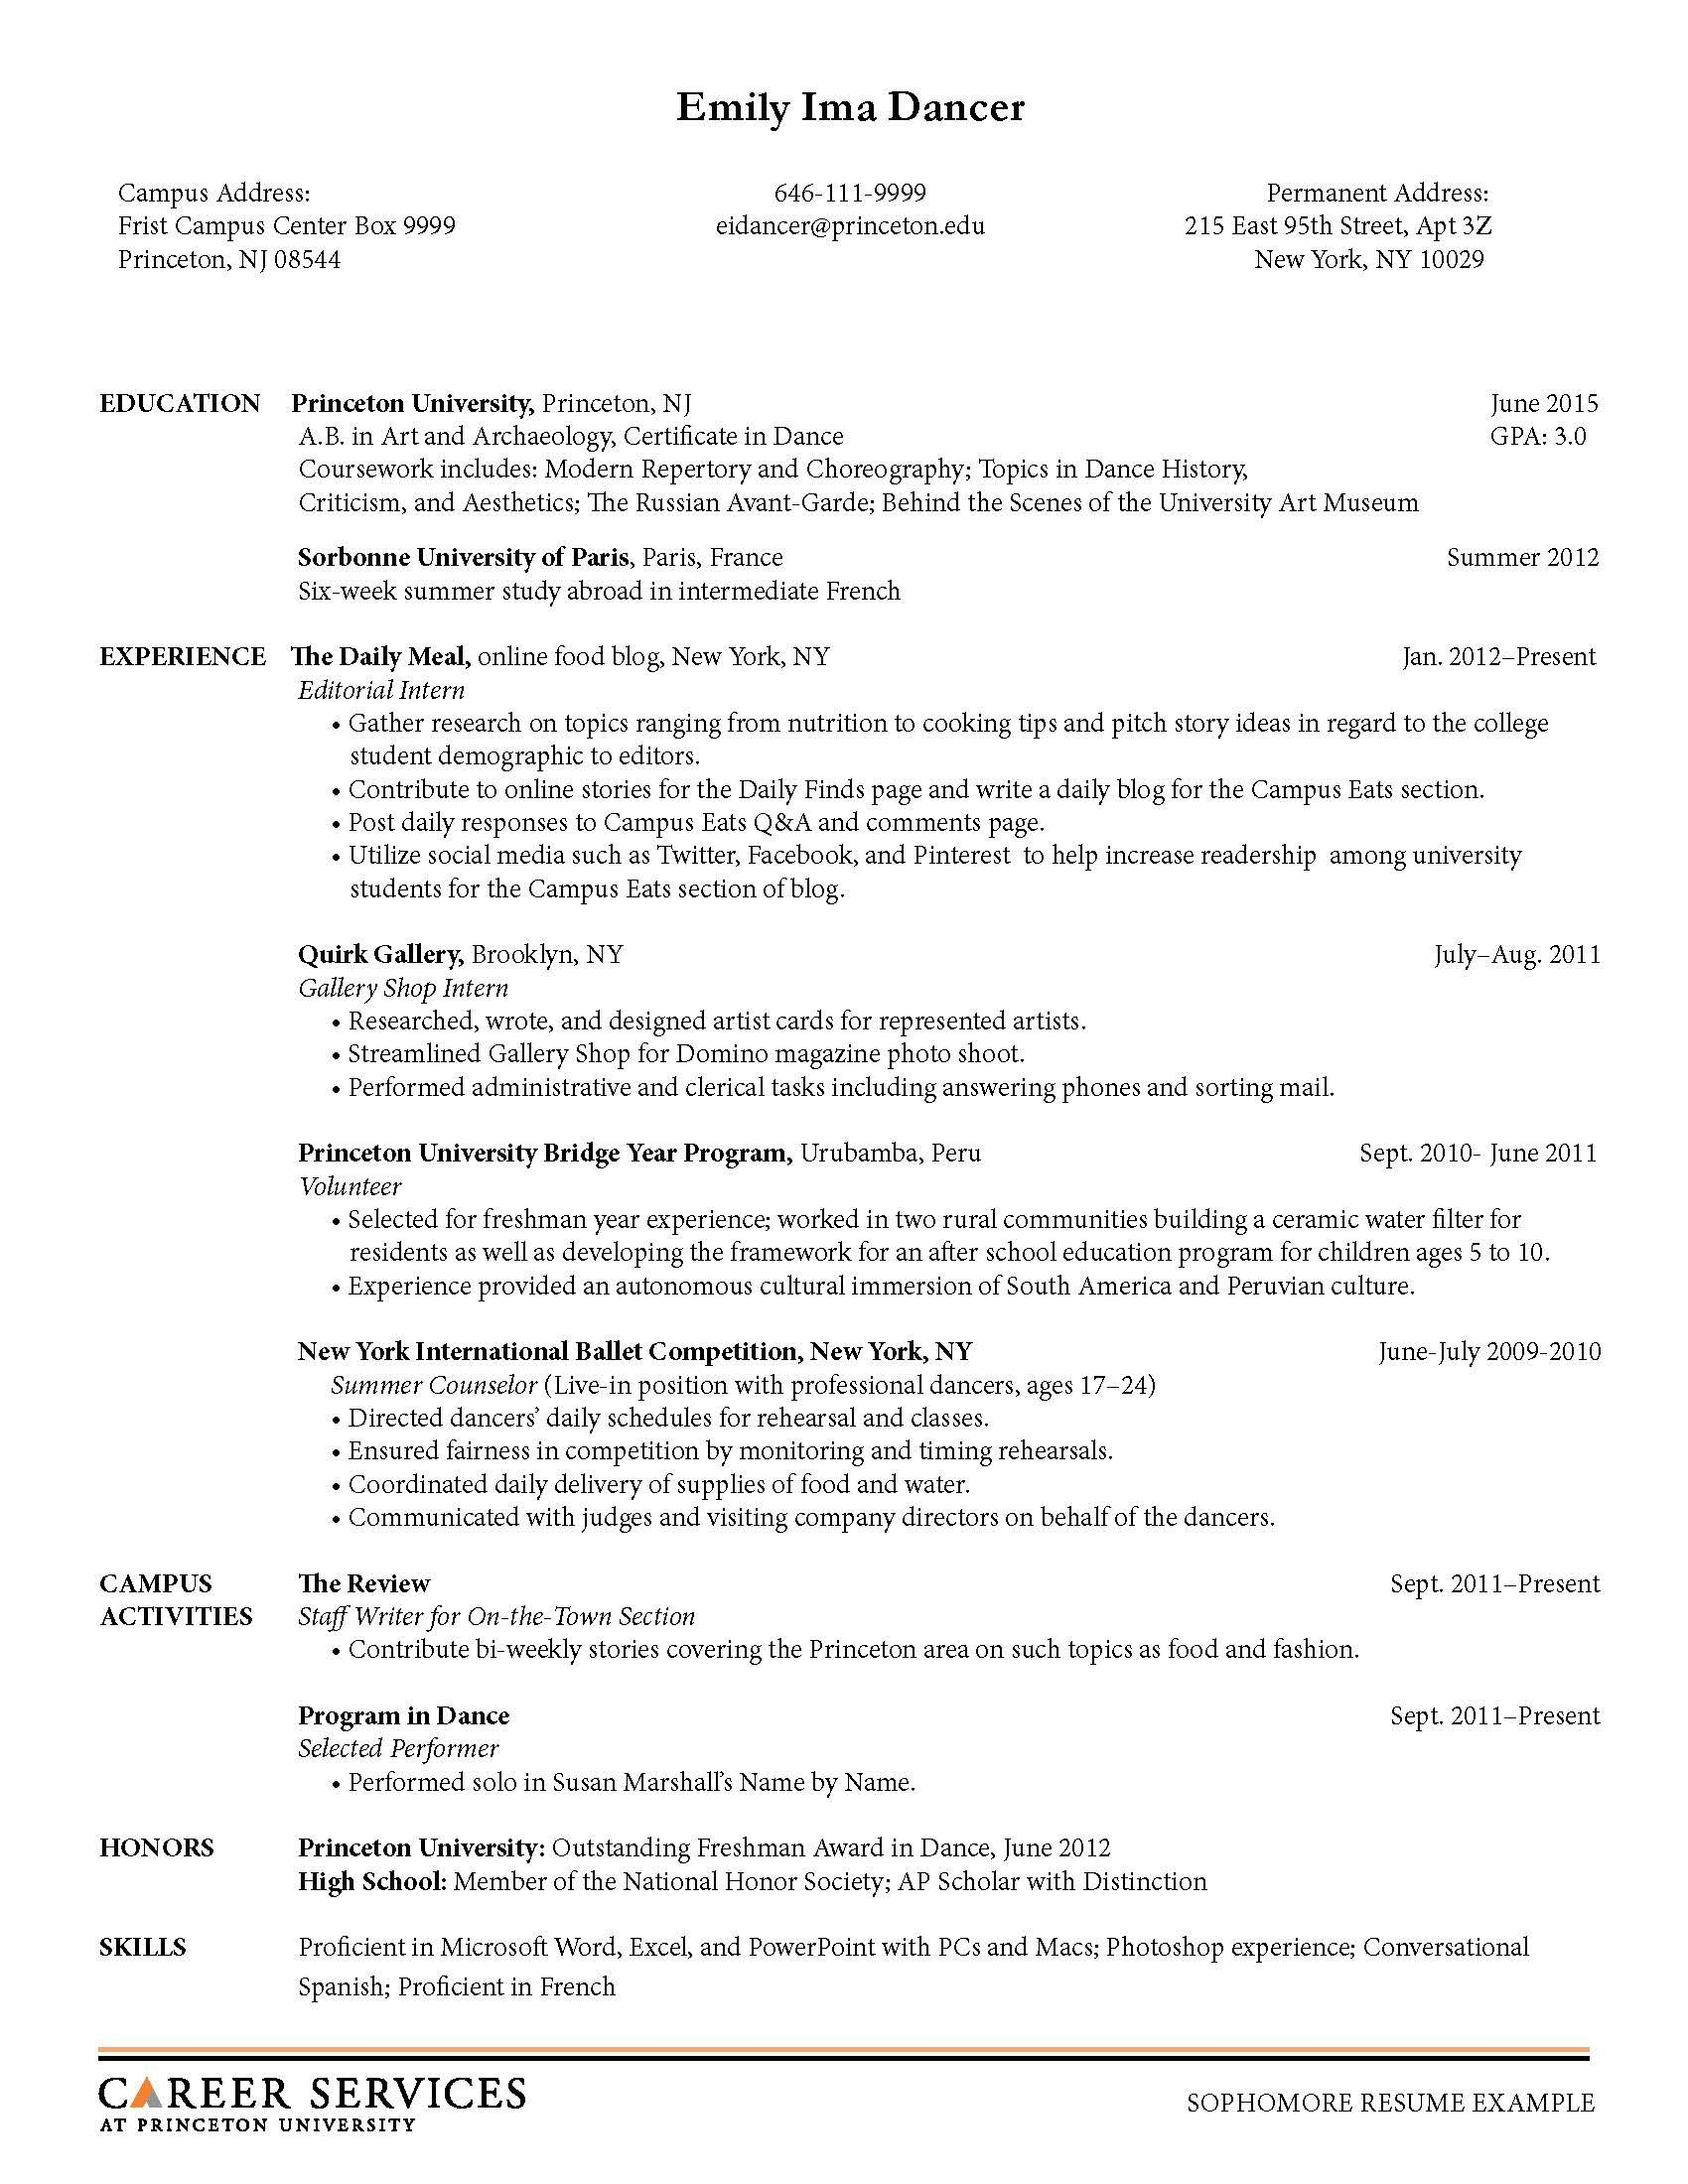 Opposenewapstandardsus  Personable Sample Resume Resume And Career On Pinterest With Gorgeous Math Tutor Resume Besides Federal Resume Guidebook Furthermore Professional Objective For Resume With Adorable Resume Examples For Nurses Also Portfolio Resume In Addition Firefighter Resume Template And What To Include On Resume As Well As Pre Med Resume Additionally School Bus Driver Resume From Pinterestcom With Opposenewapstandardsus  Gorgeous Sample Resume Resume And Career On Pinterest With Adorable Math Tutor Resume Besides Federal Resume Guidebook Furthermore Professional Objective For Resume And Personable Resume Examples For Nurses Also Portfolio Resume In Addition Firefighter Resume Template From Pinterestcom